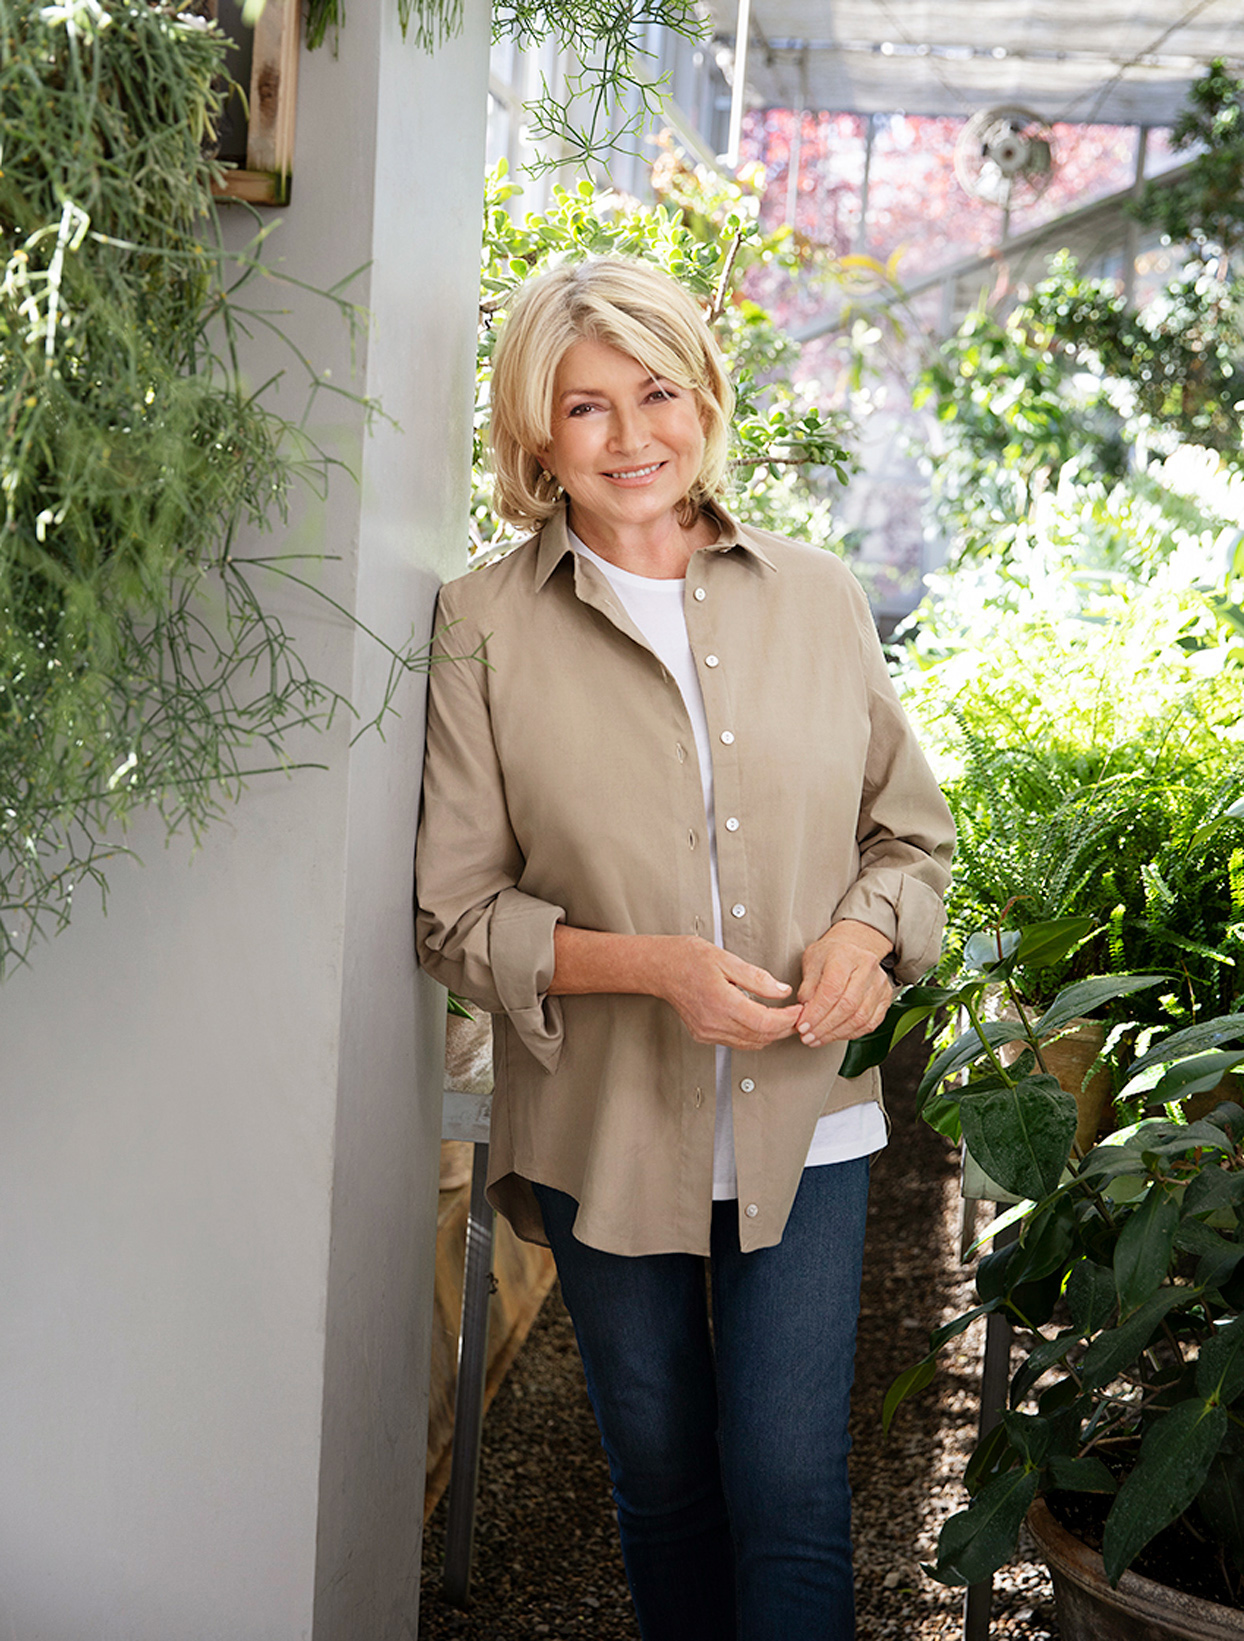 Martha Stewart in home garden